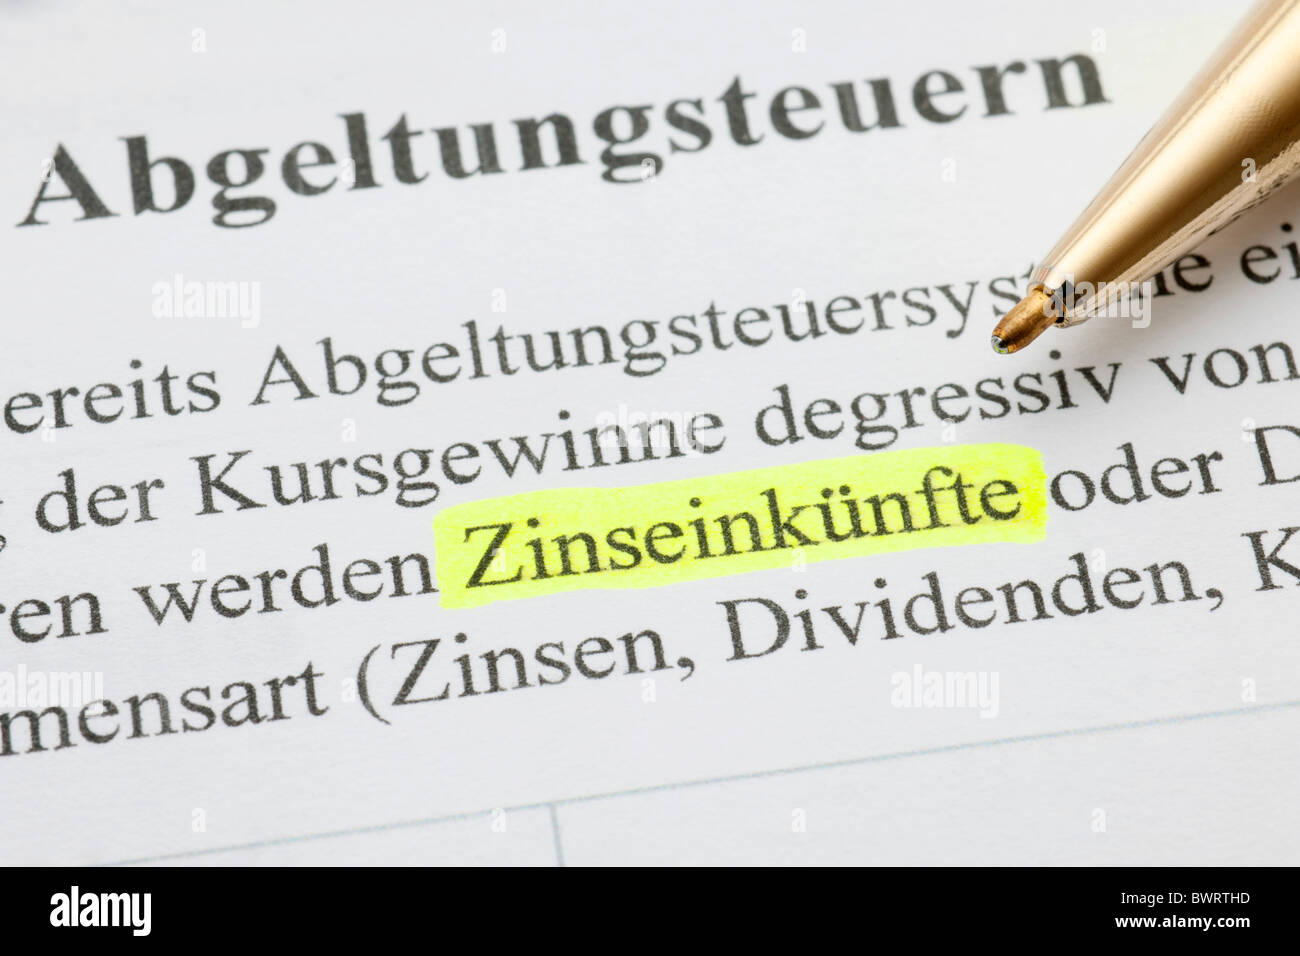 Kapitalertraege, German for Interest income - Stock Image